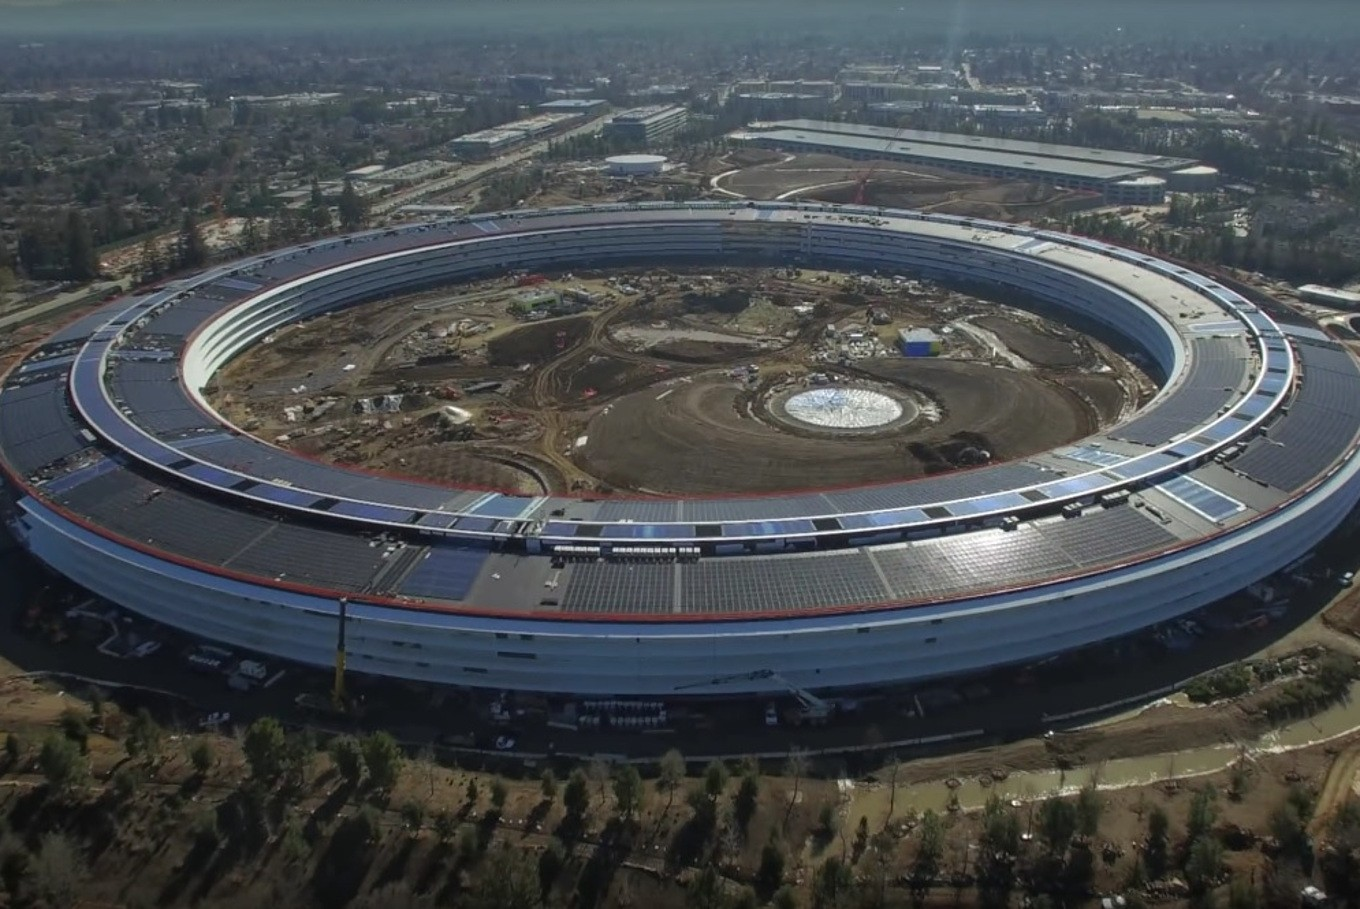 9 interesting facts about Apple's new 'spaceship' campus